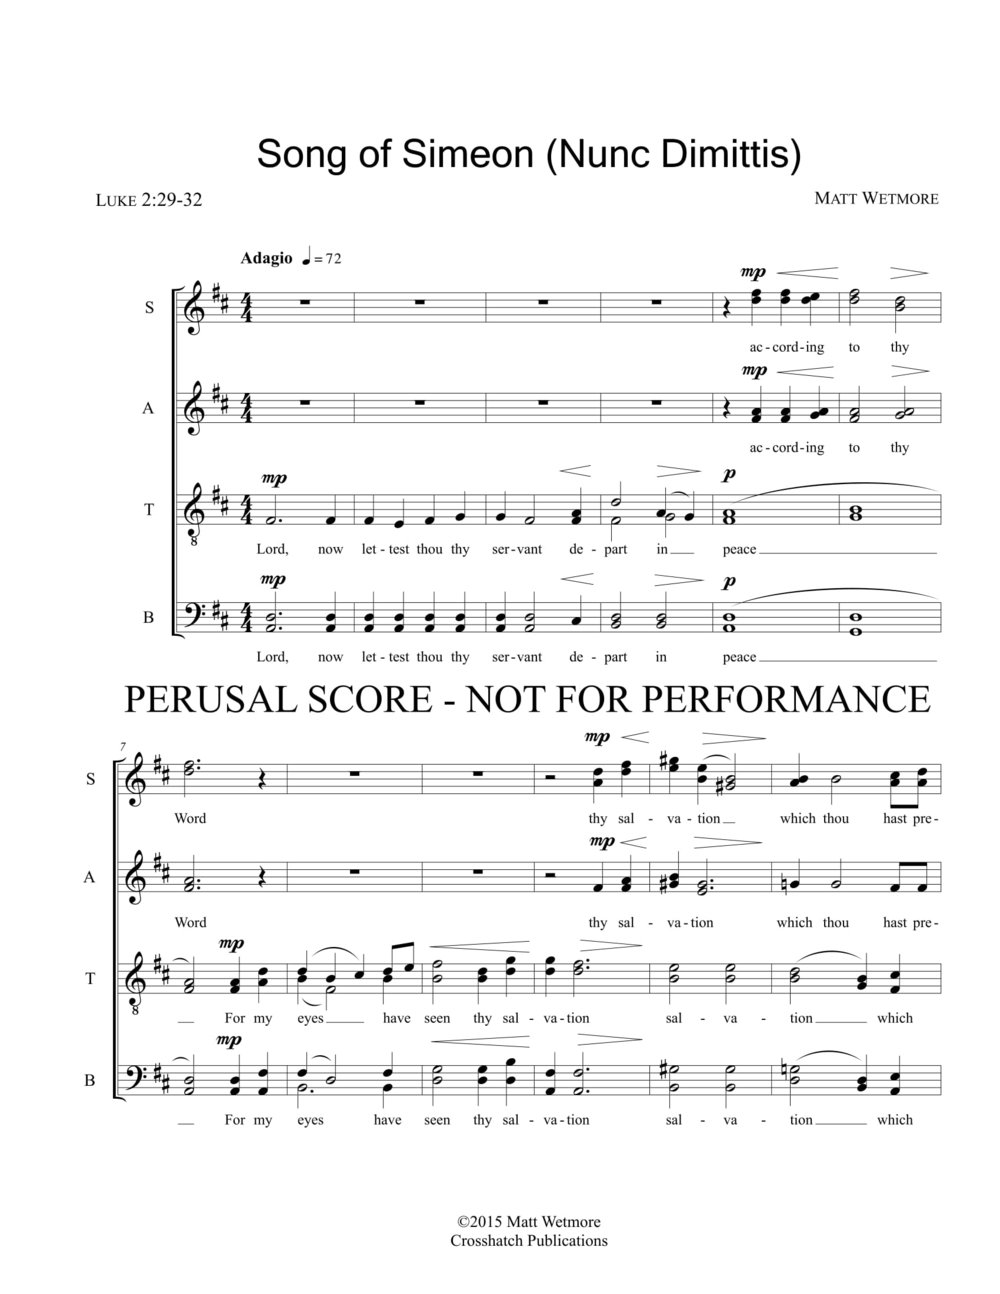 Song of Simeon - Perusal-3.jpg